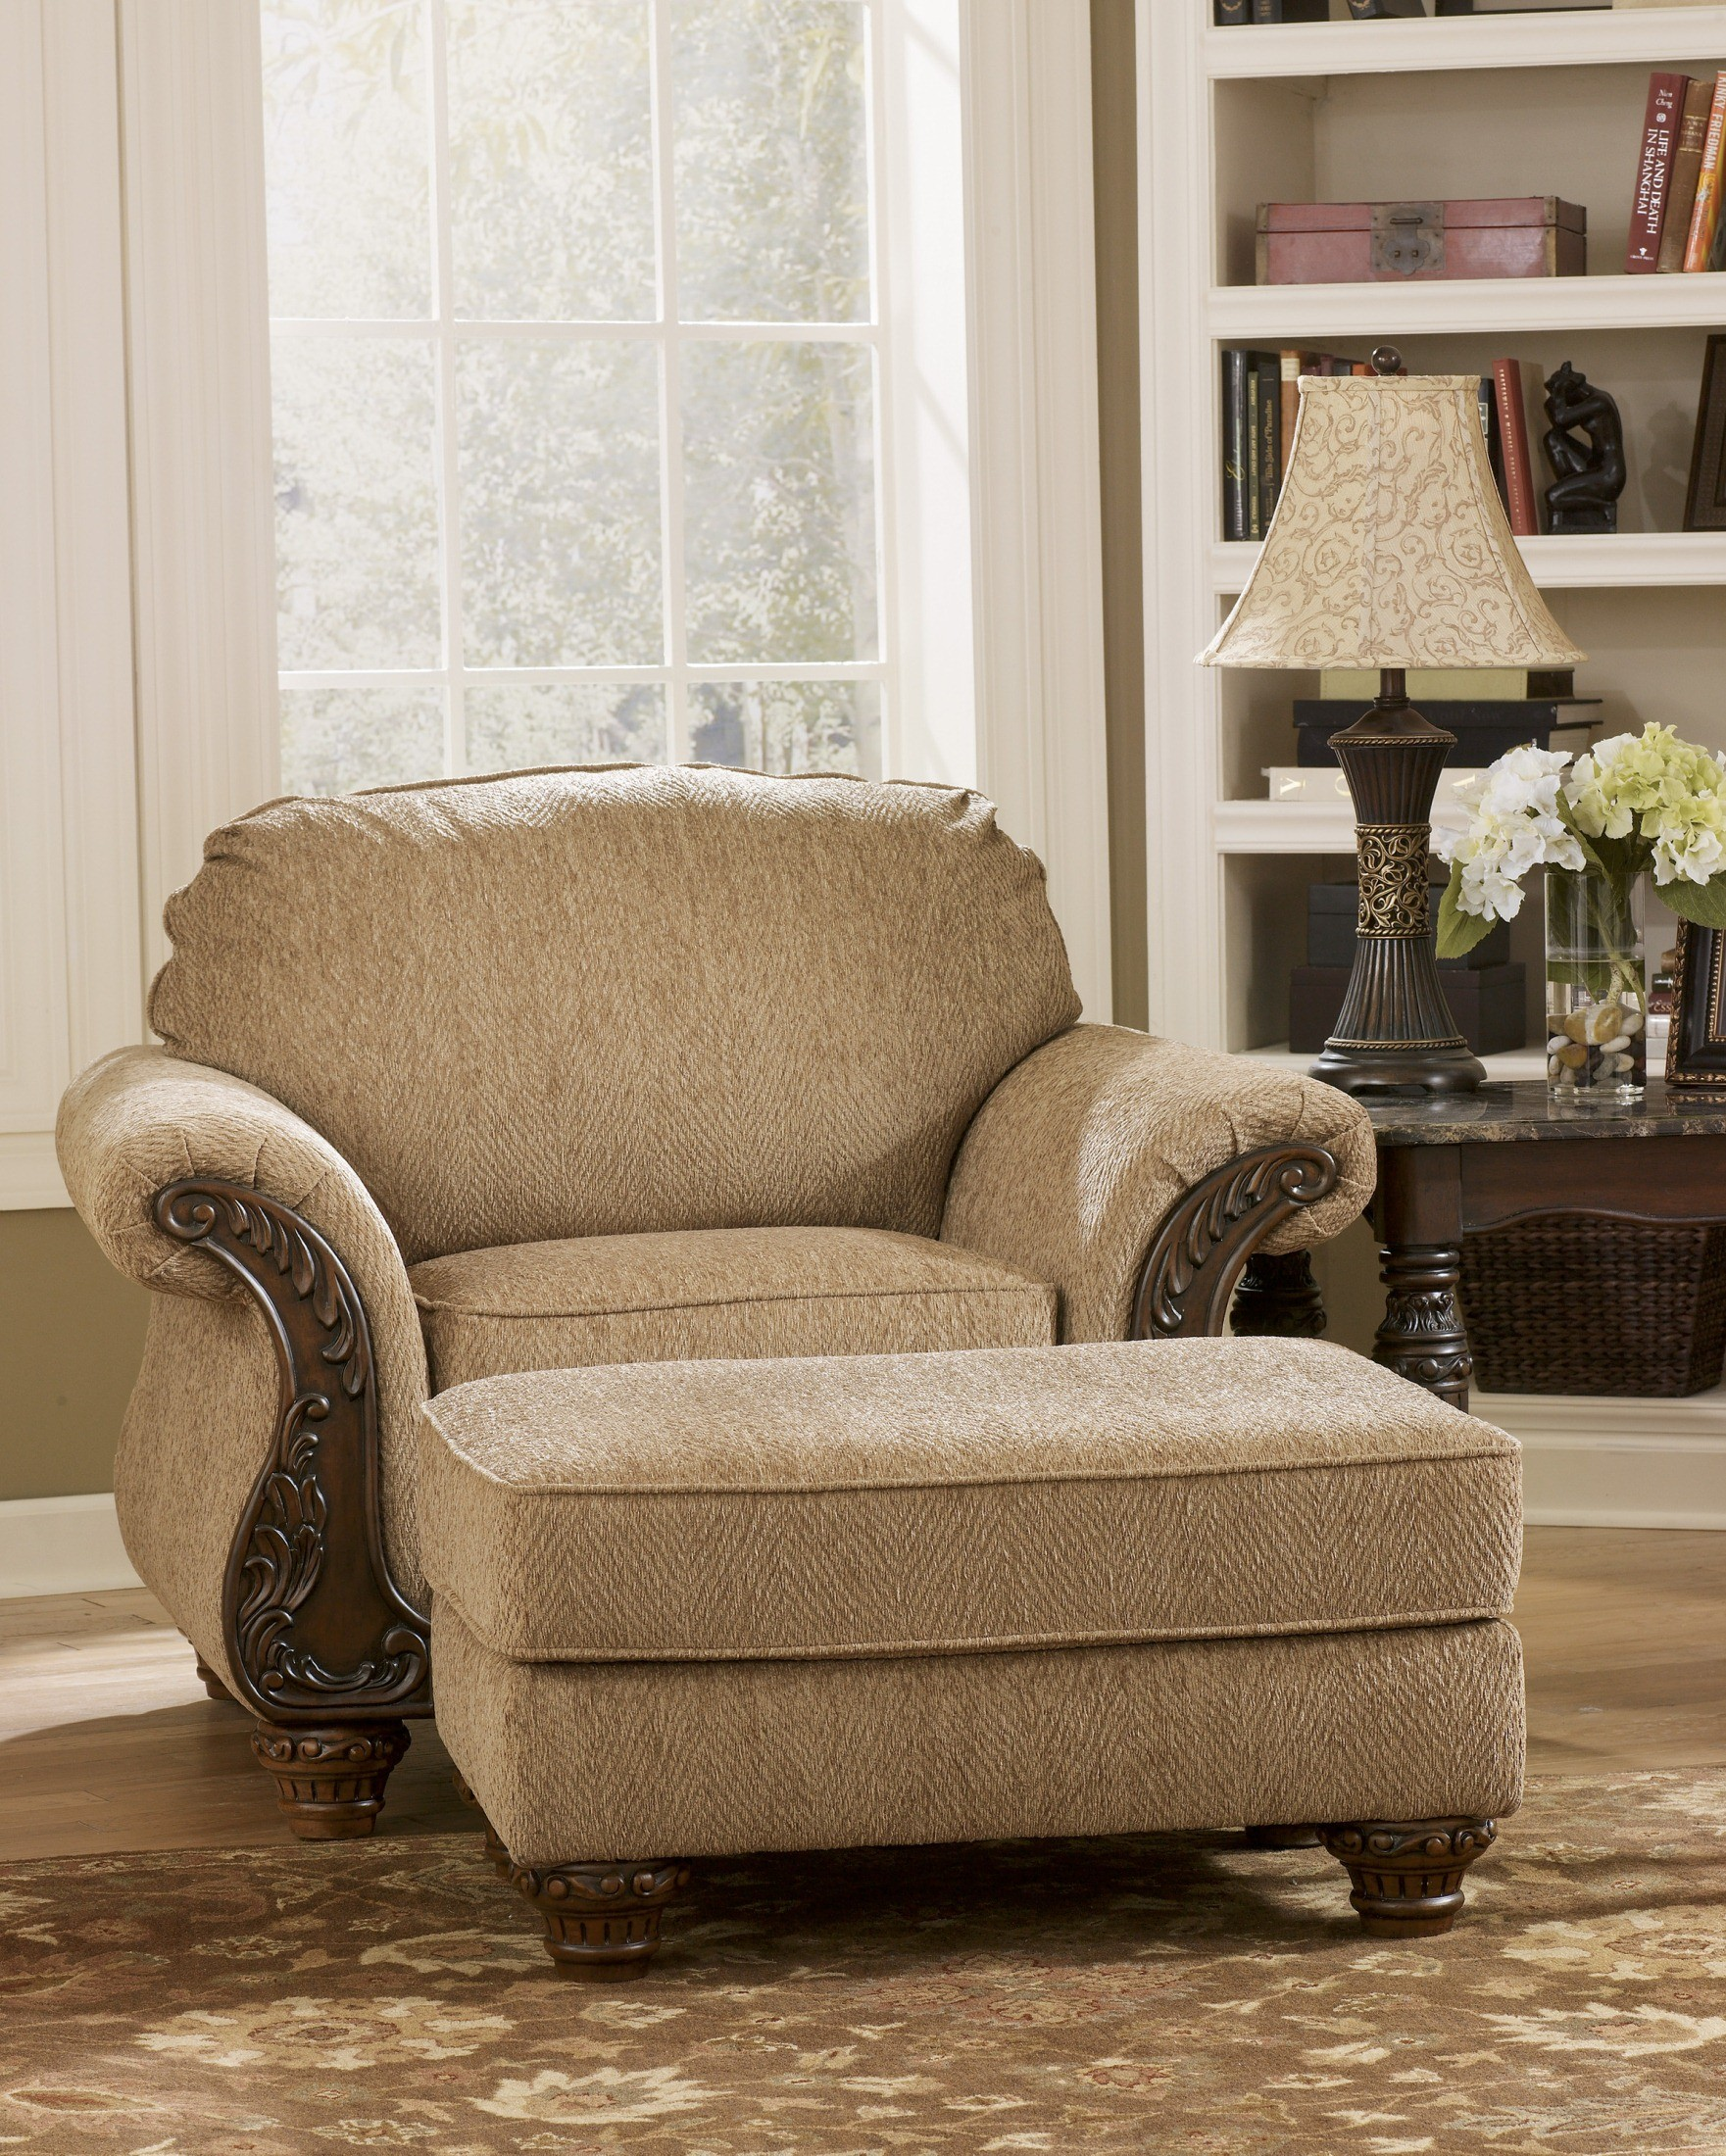 Cambridge amber living room set from ashley 3940138 for Affordable furniture cambridge